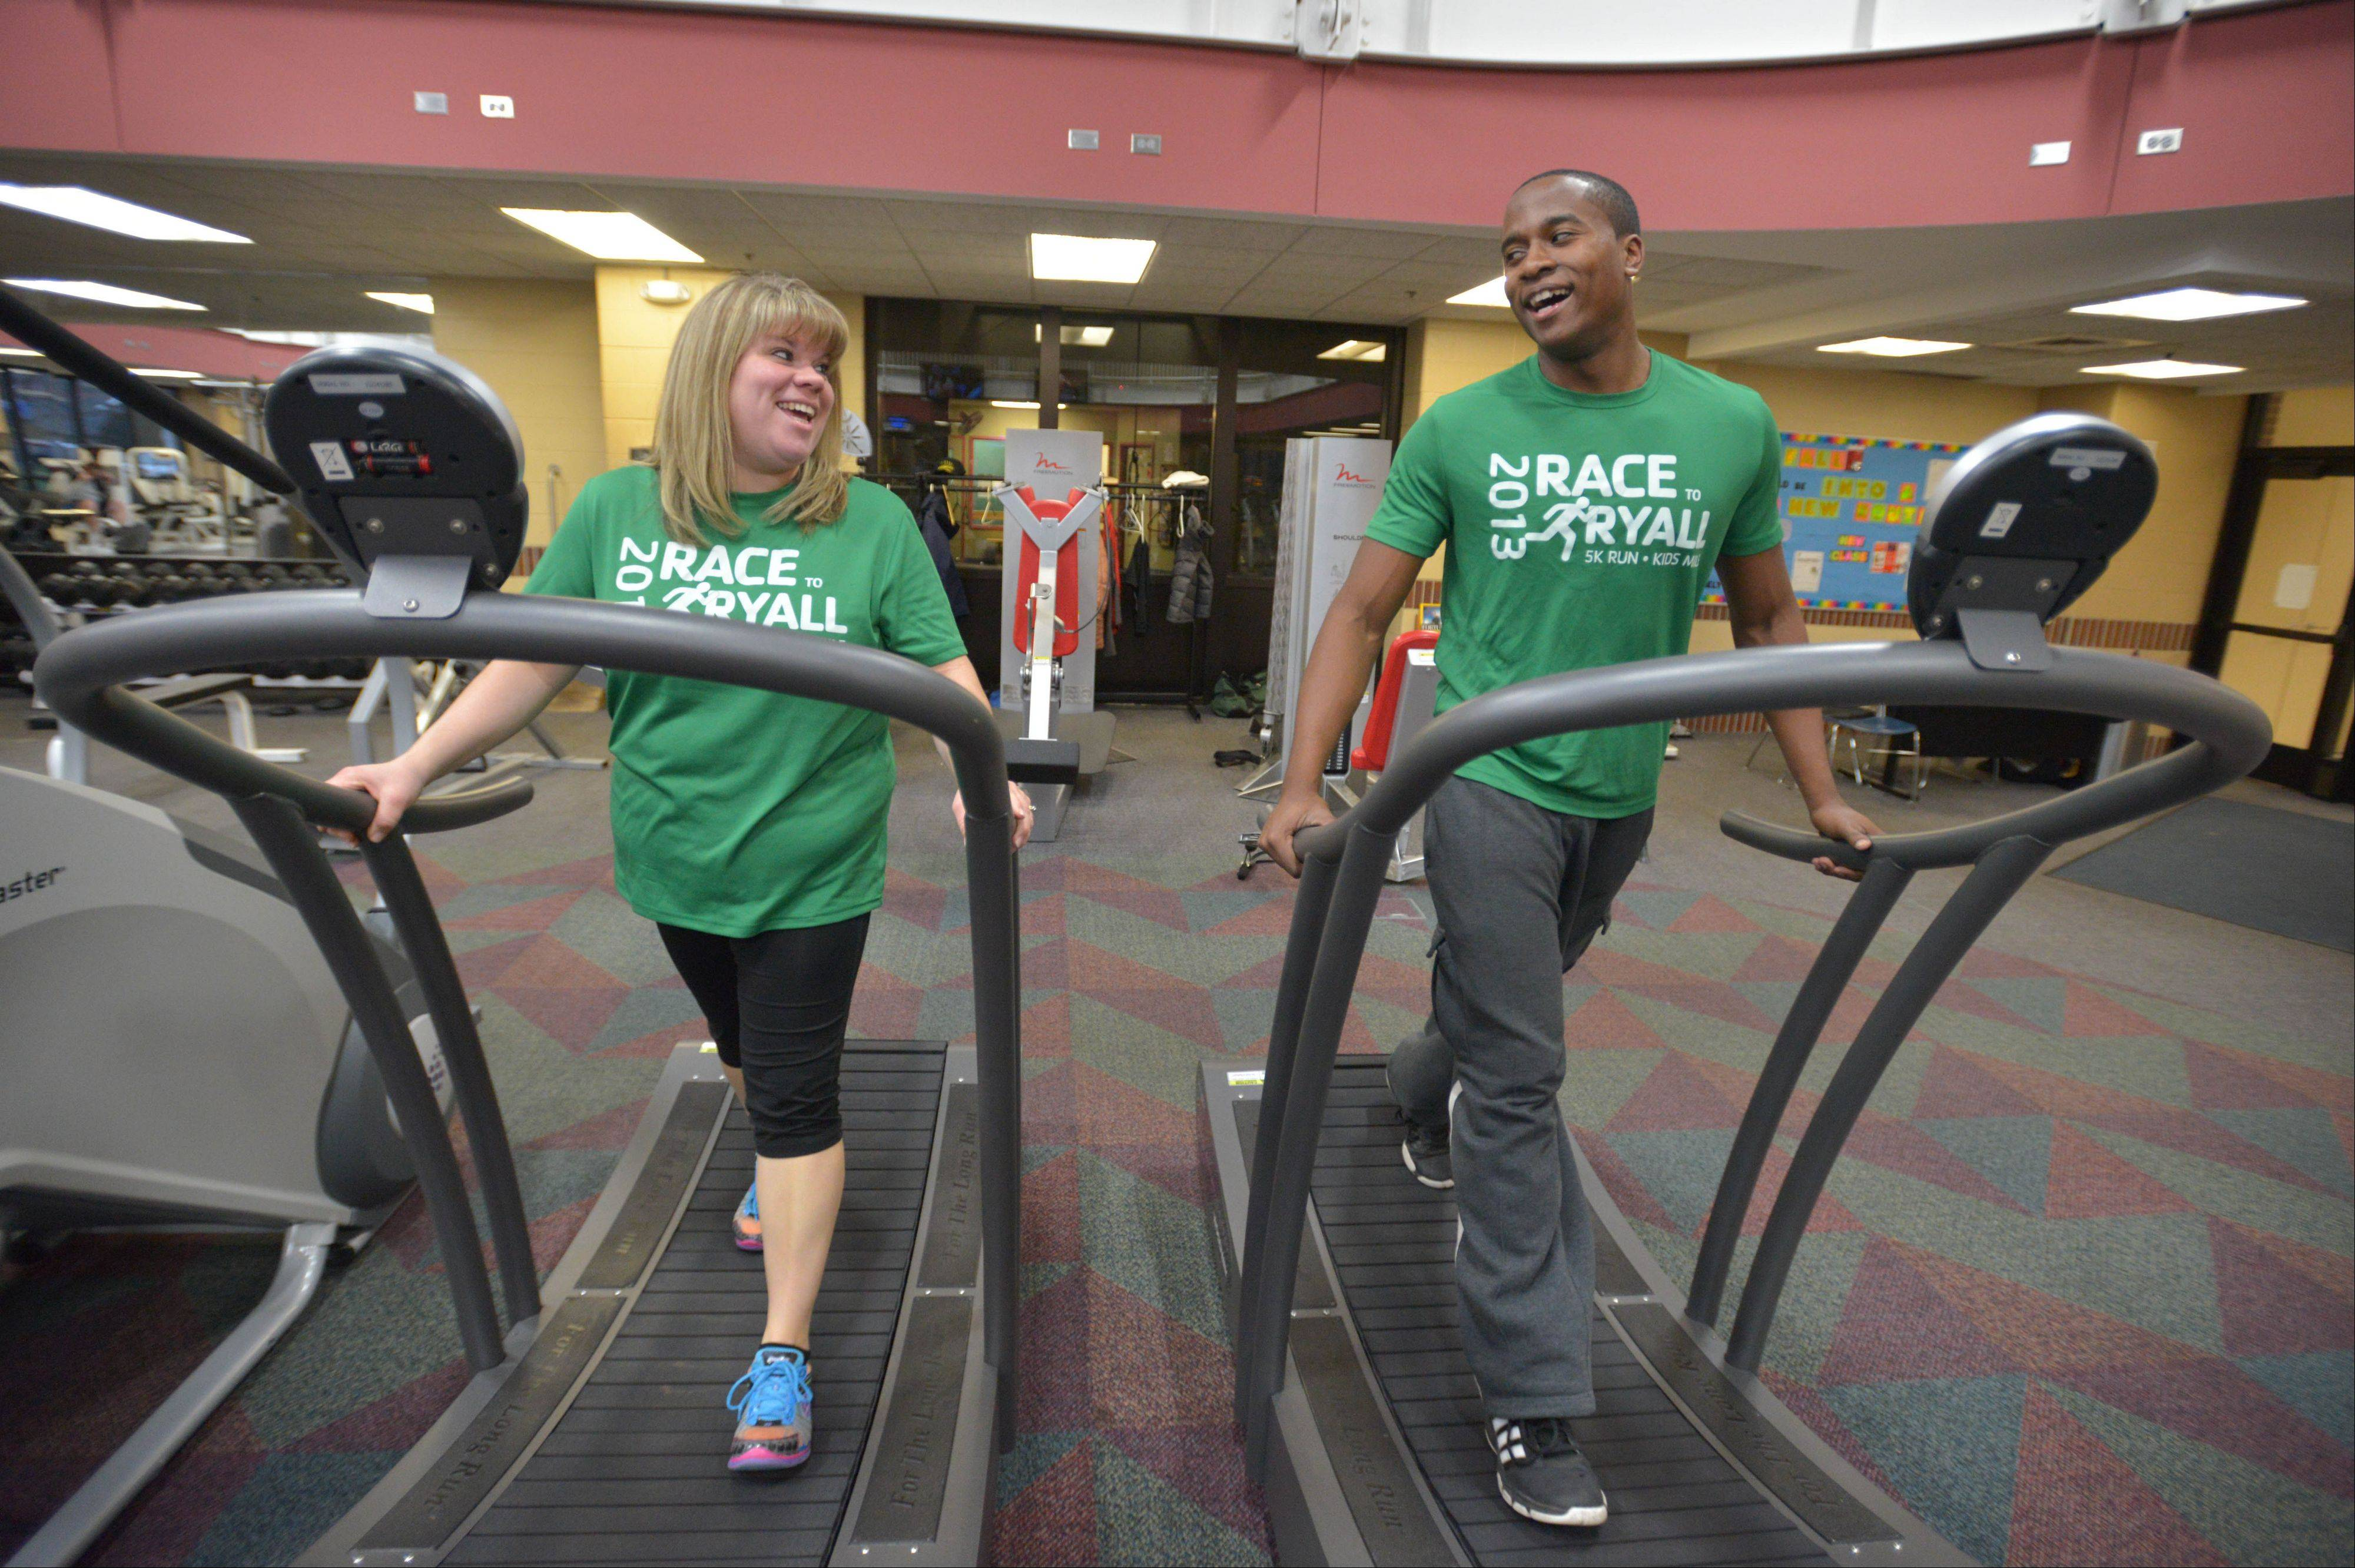 Carl Lane, a 20-year-old College of DuPage student who works at the Glen Ellyn YMCA, jogs with Mandi Leicht of Glen Ellyn. Lane helped Leicht run her first 5K.